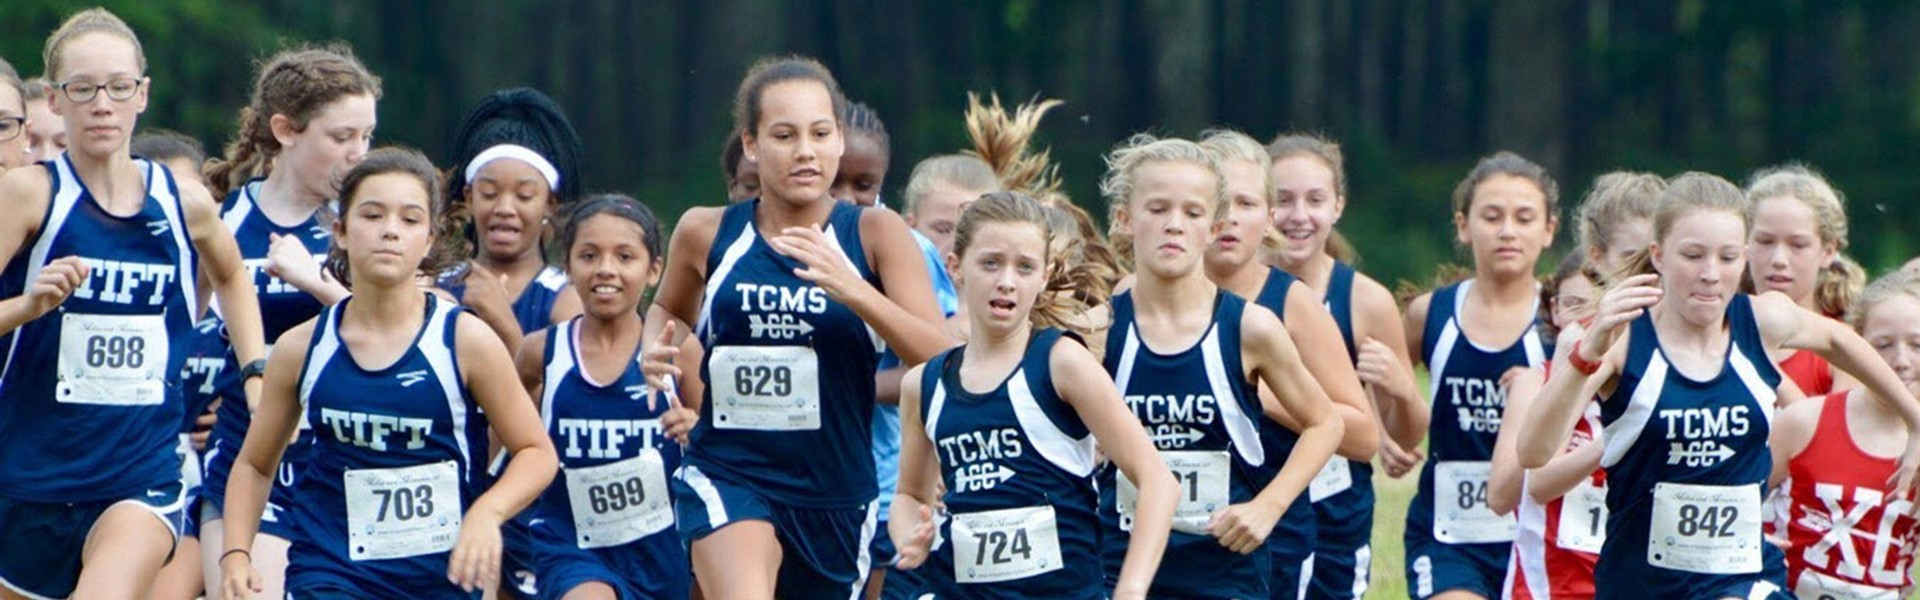 TCMS Cross Country